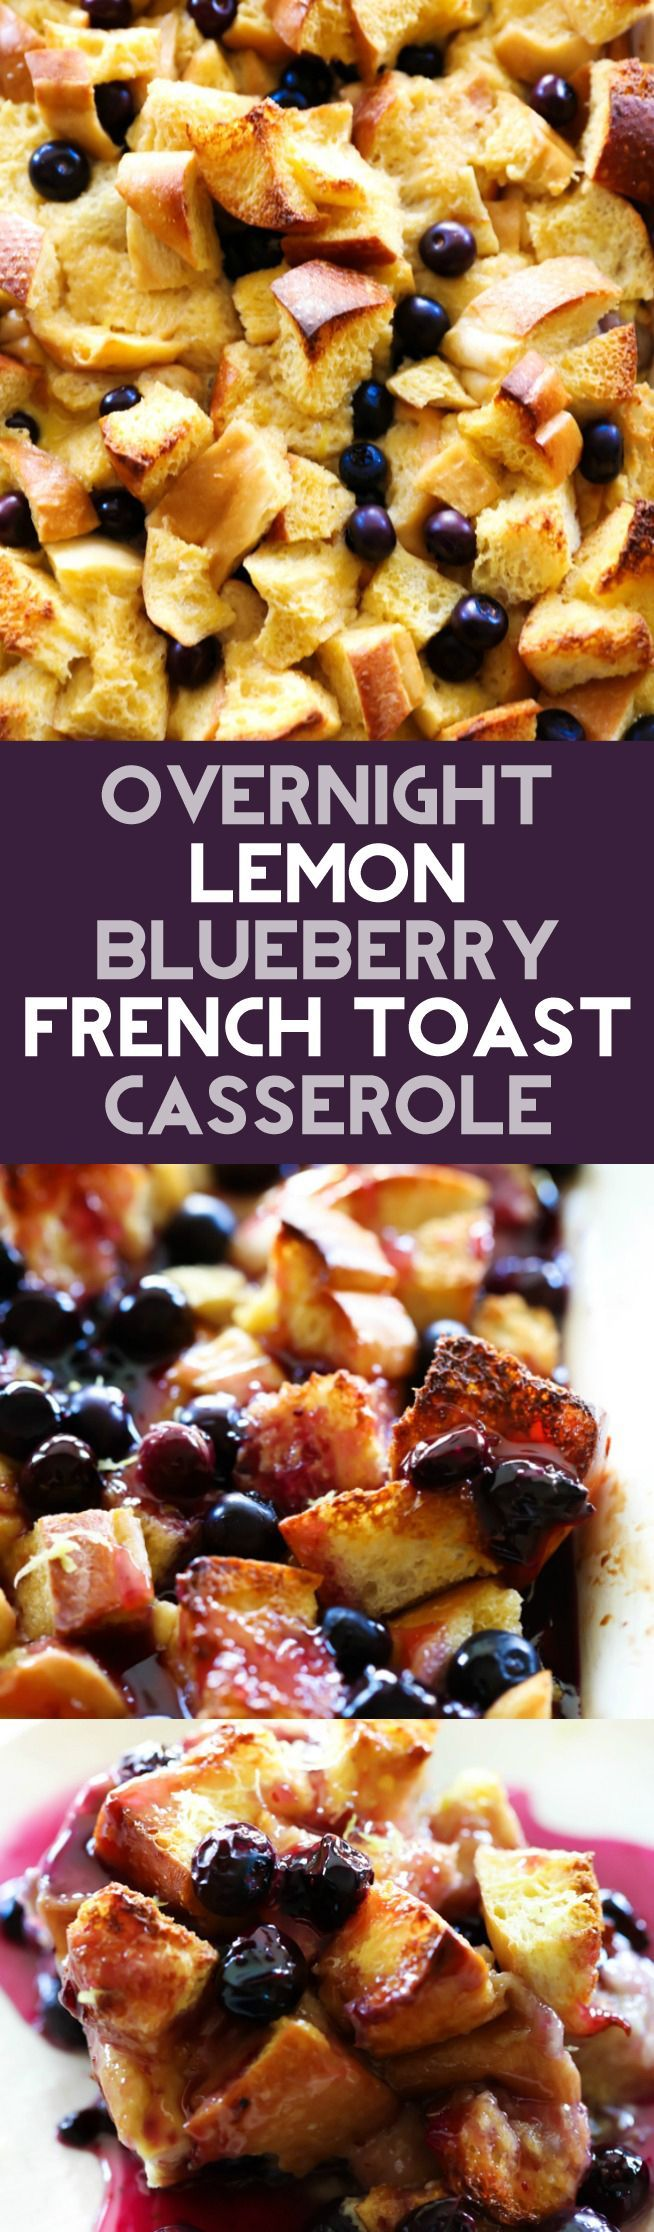 Overnight Lemon Blueberry French Toast Casserole